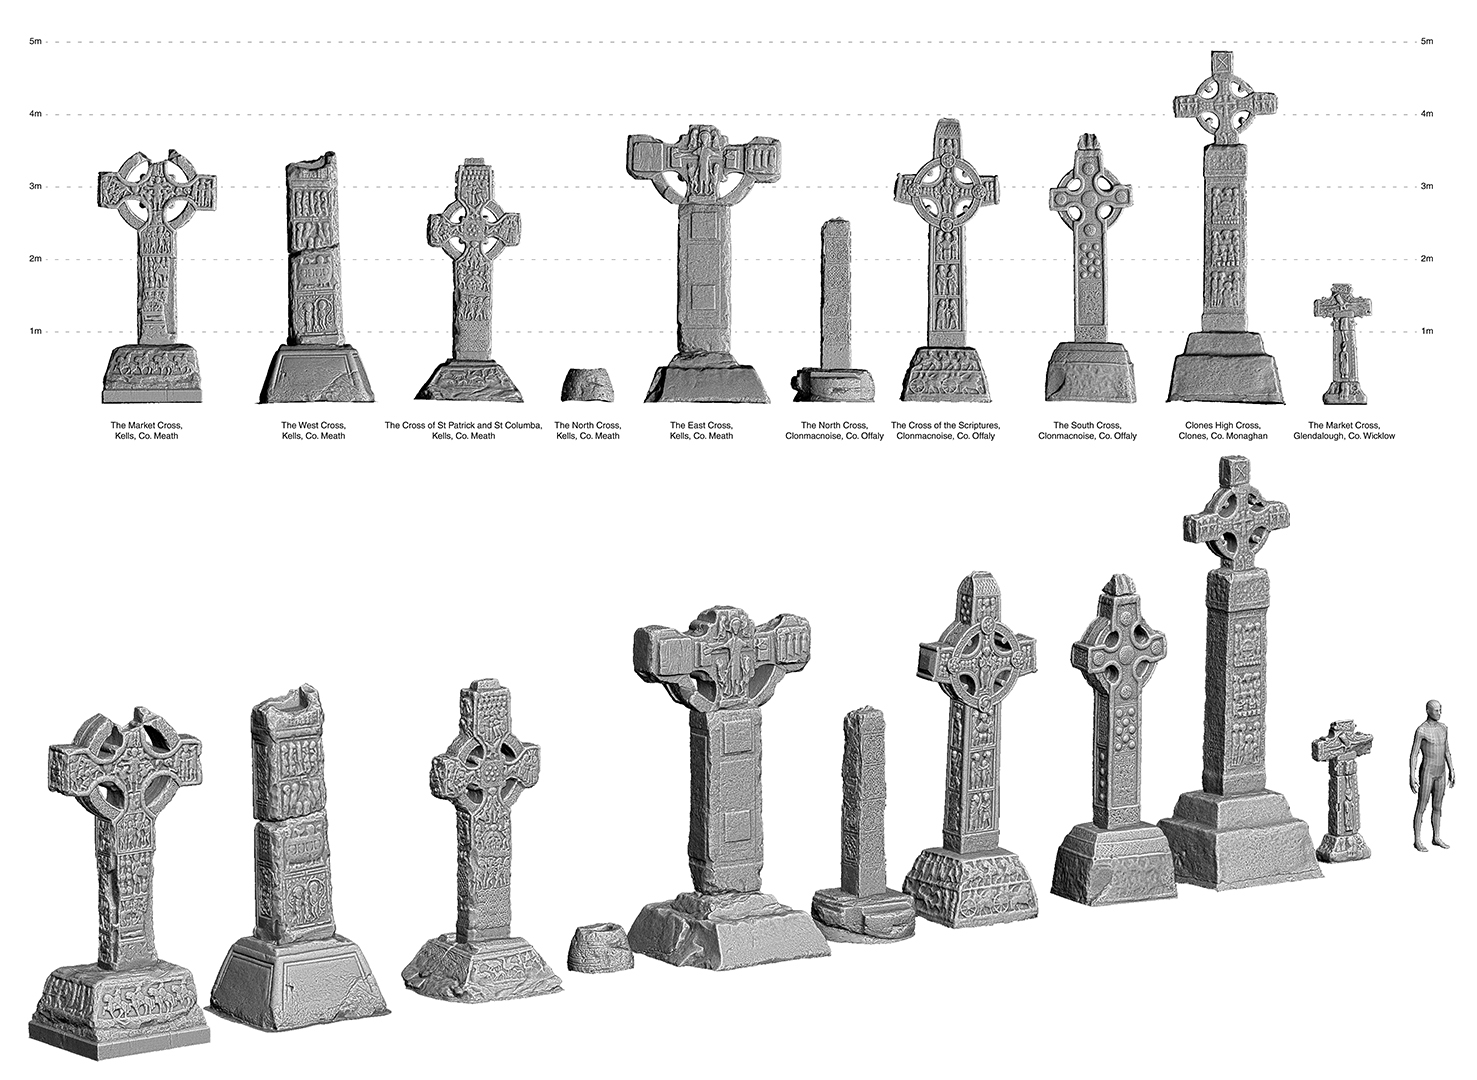 HIGH CROSSES COMPARRISON WEB